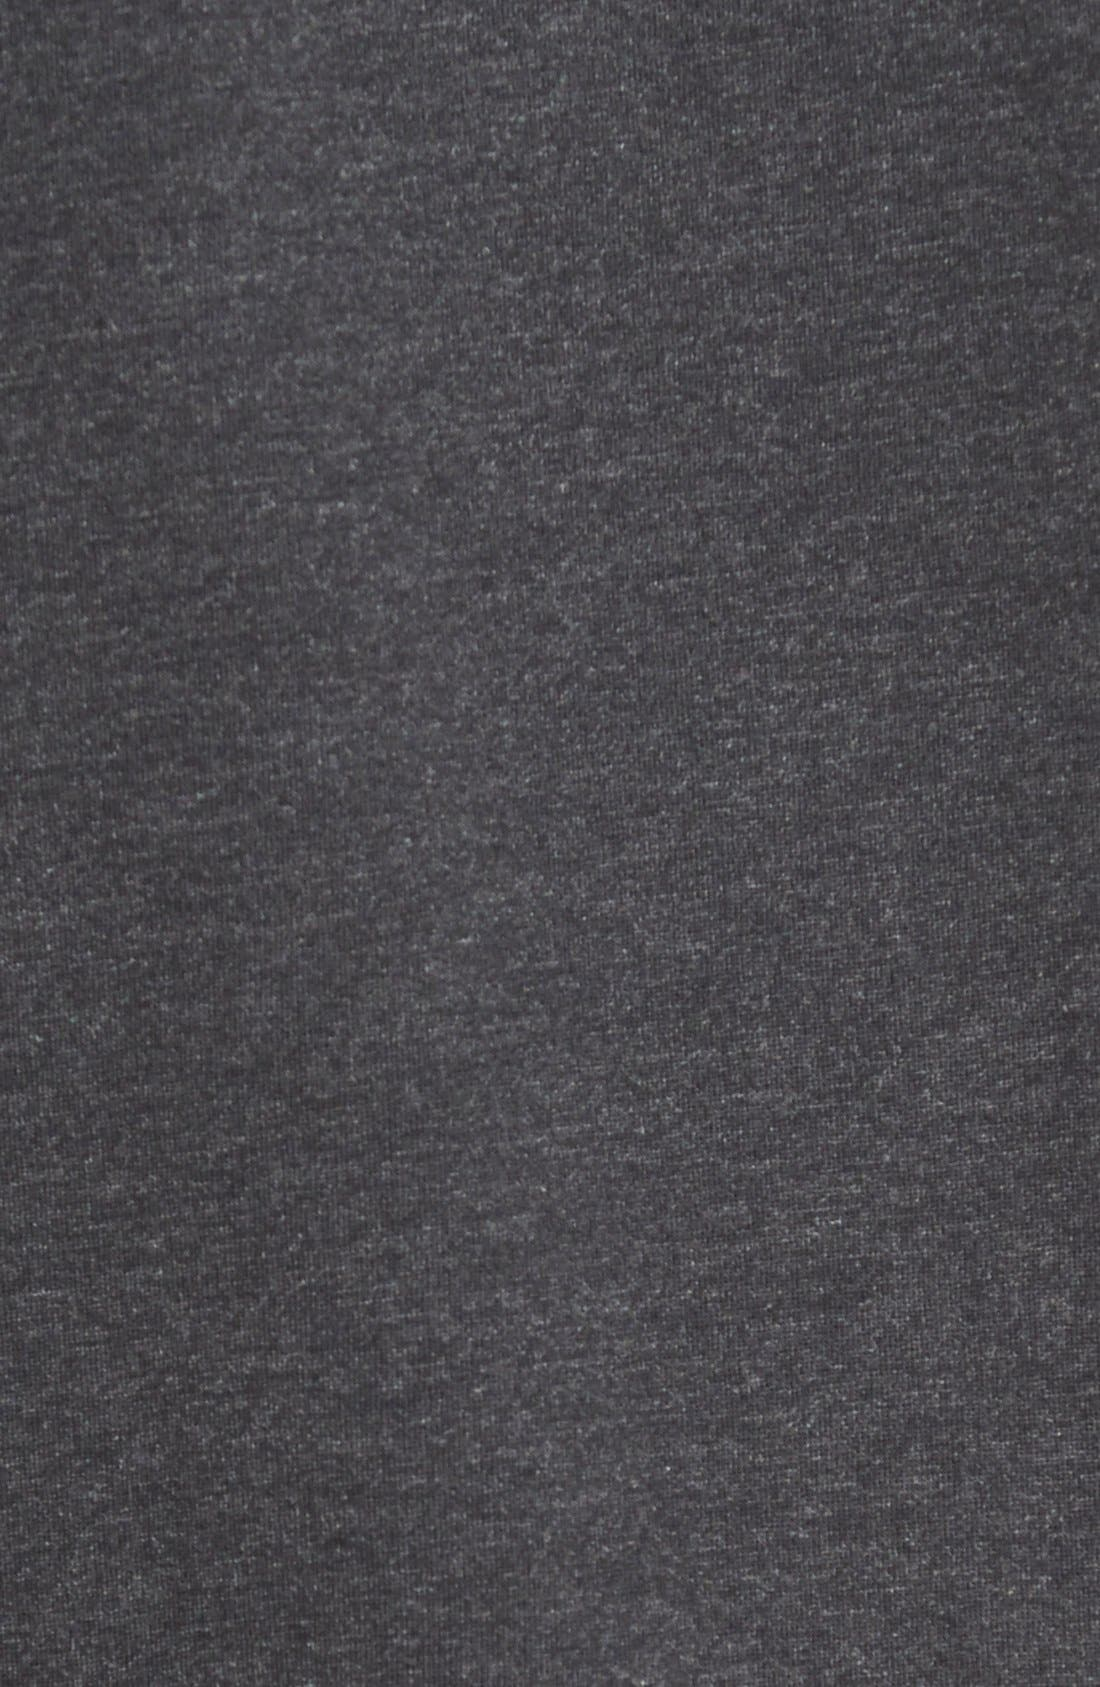 'NY Athletic Club' Graphic T-Shirt,                             Alternate thumbnail 3, color,                             001